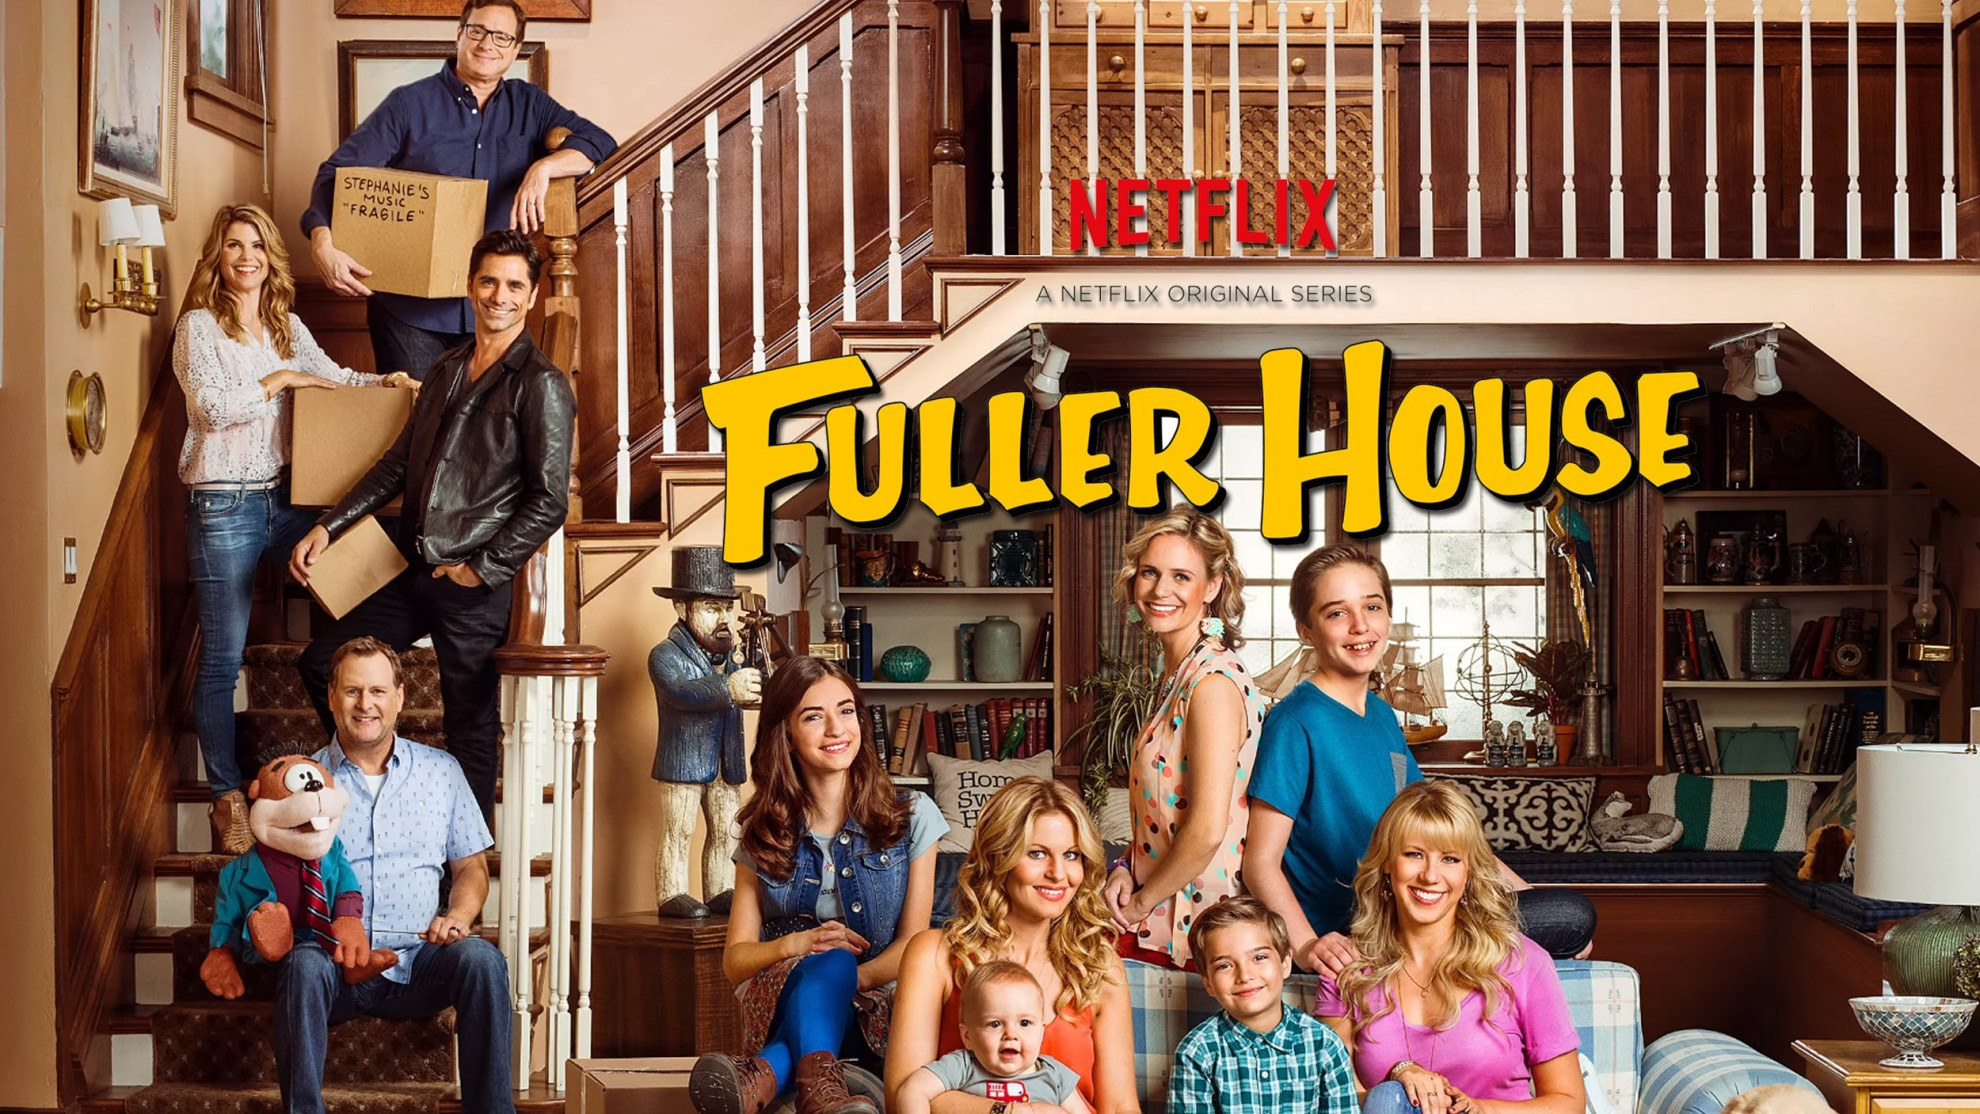 The house is full again. Fuller house is coming to Netflix February 26.